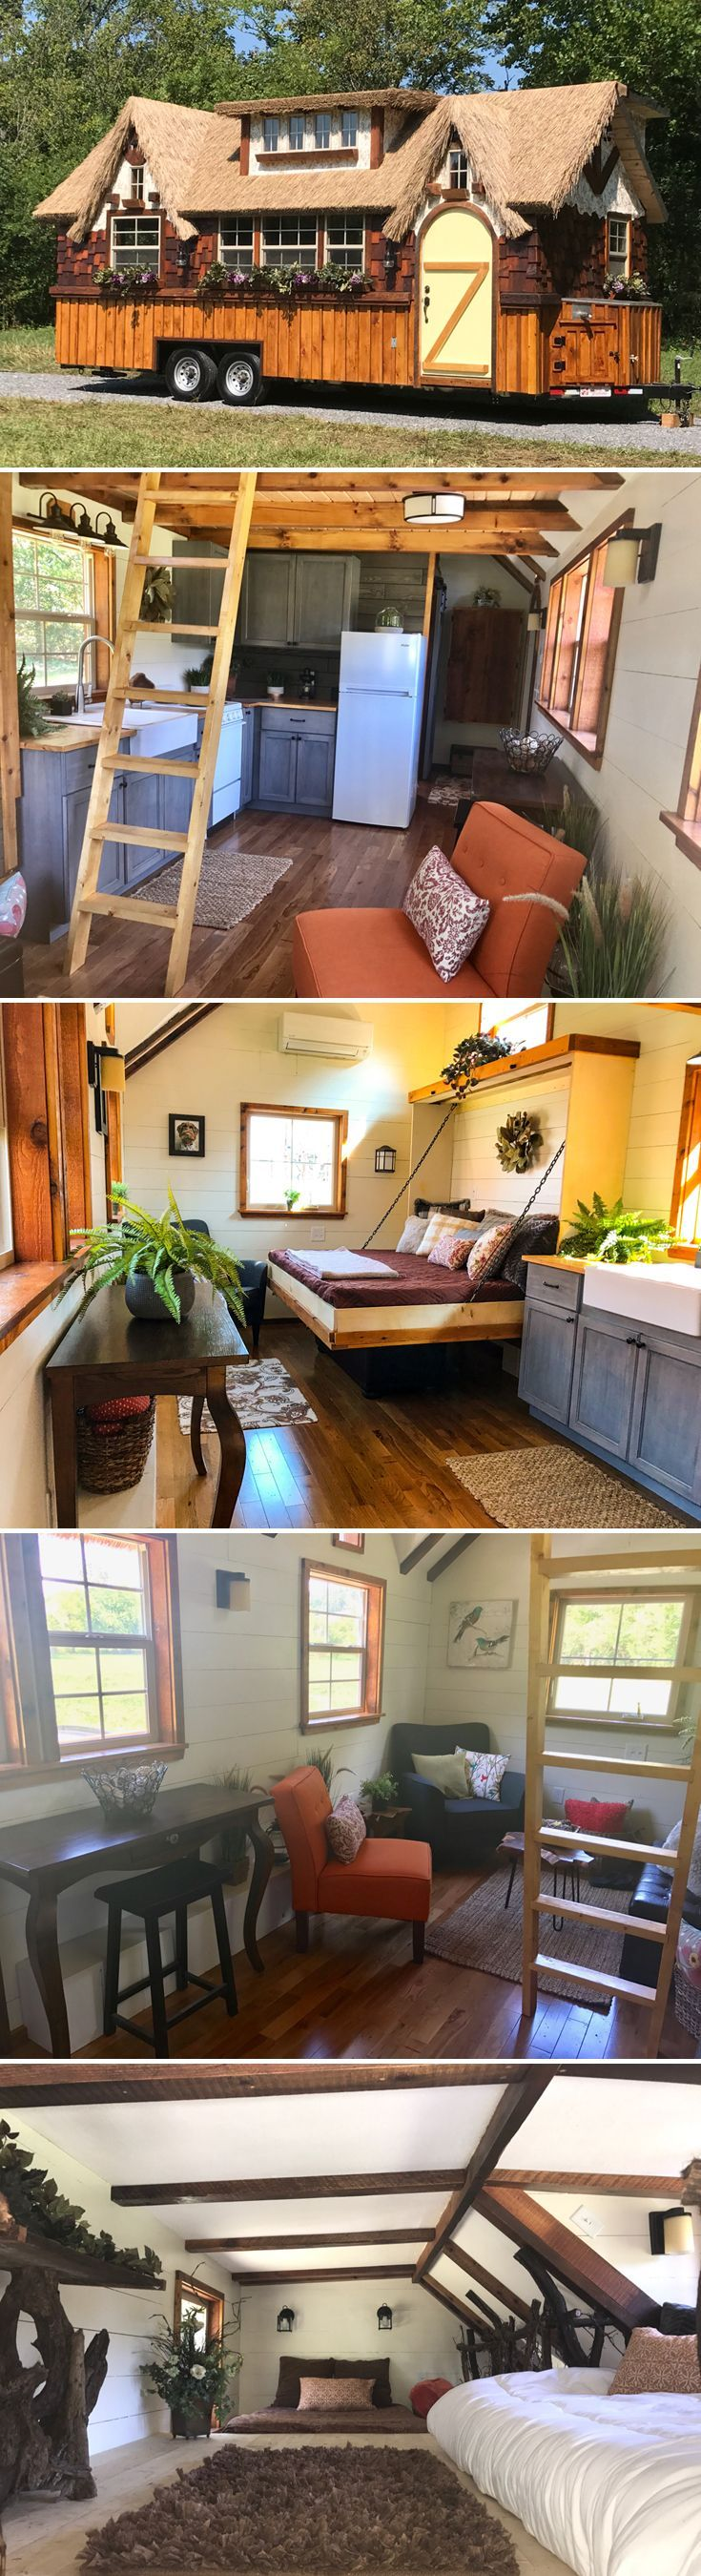 Highland by Incredible Tiny Homes #tinyhomes